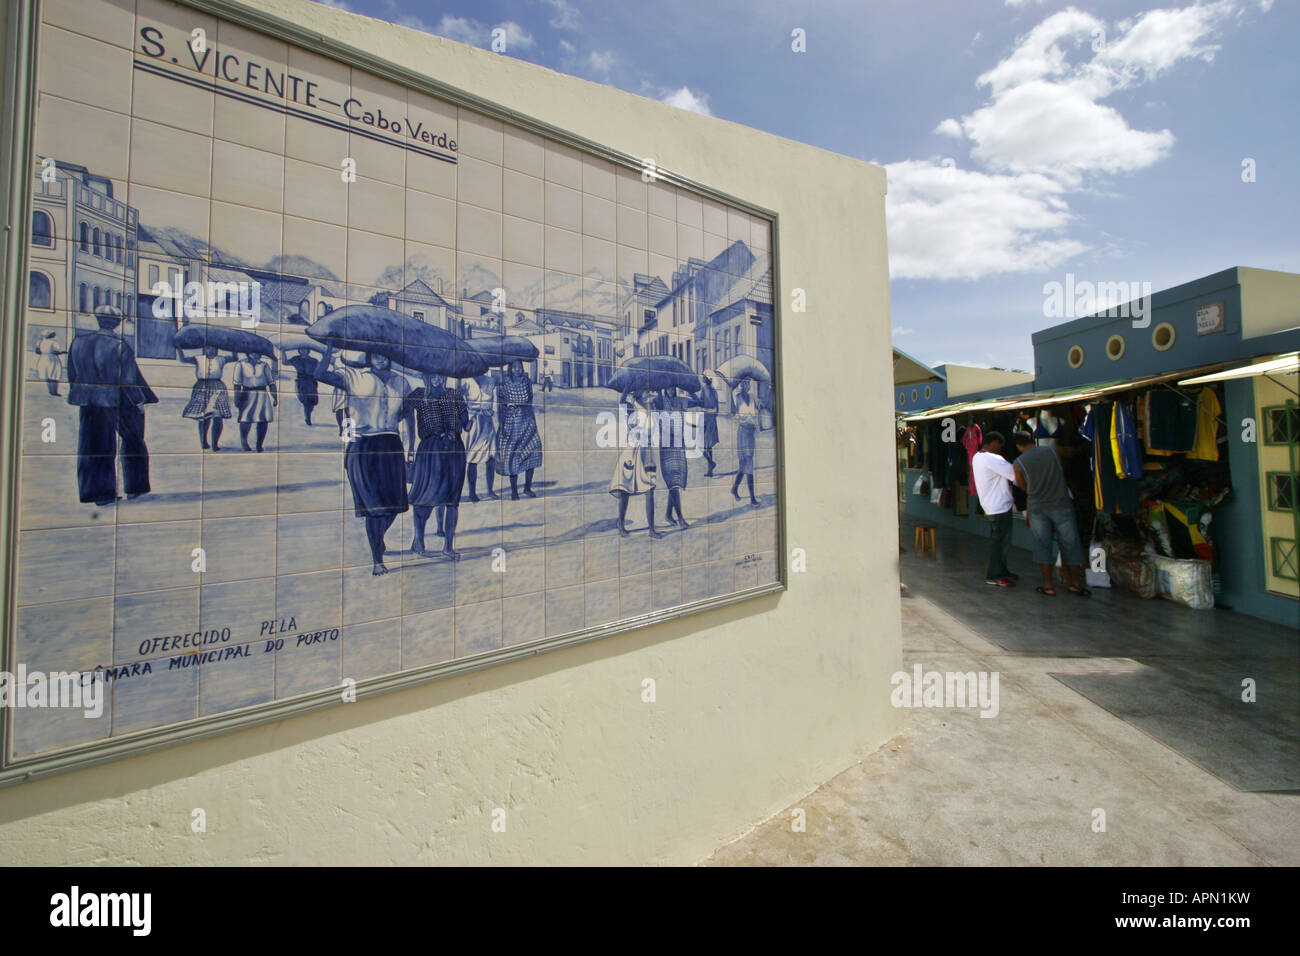 Ceramic tile mural showing past scenes in the market place of ceramic tile mural showing past scenes in the market place of mindelo on sao vicente in the cape verde island dailygadgetfo Choice Image